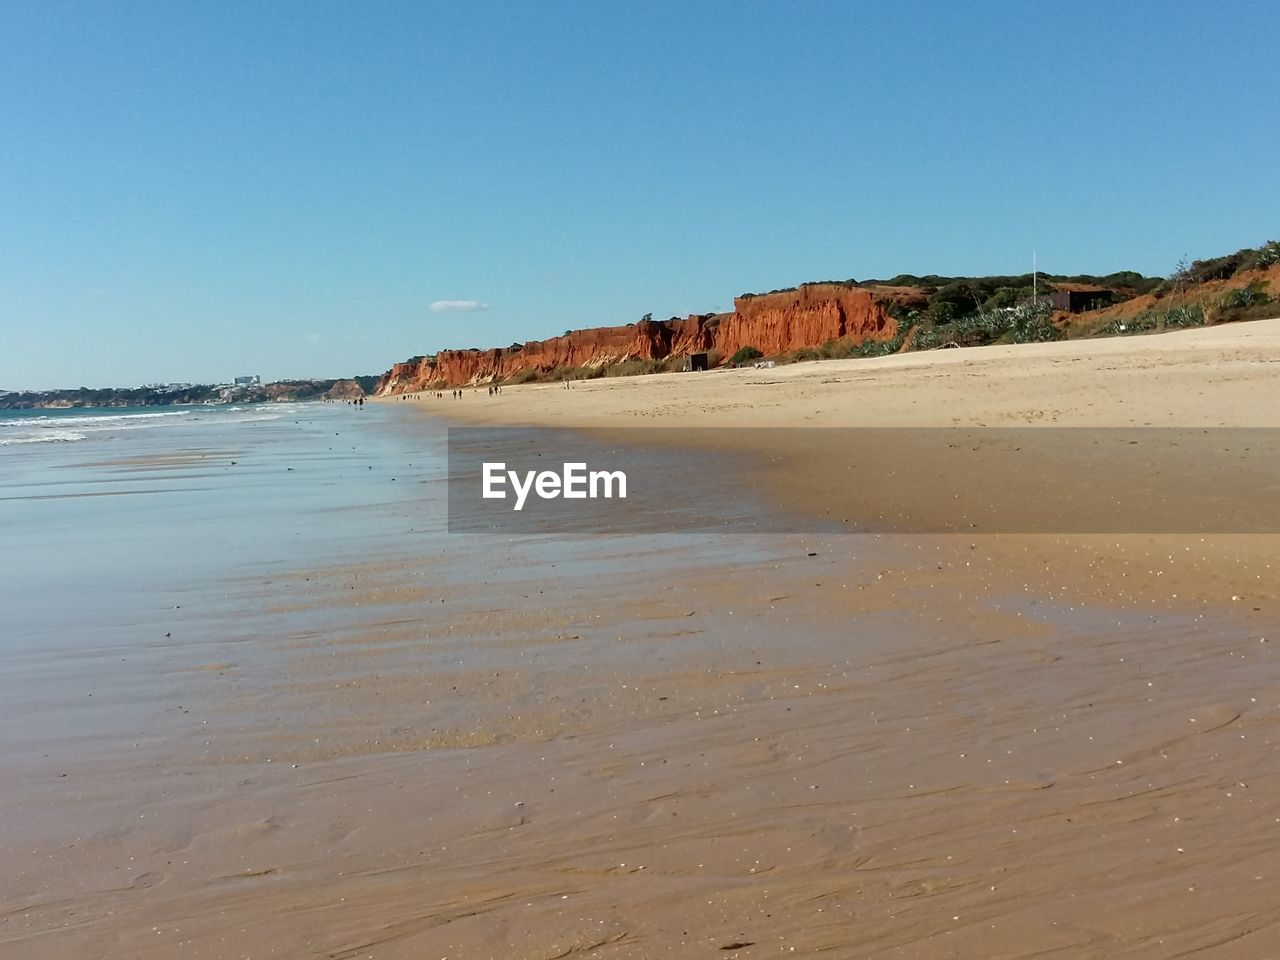 sky, land, beach, clear sky, sea, water, scenics - nature, tranquility, nature, beauty in nature, tranquil scene, copy space, sand, no people, day, blue, non-urban scene, rock, outdoors, arid climate